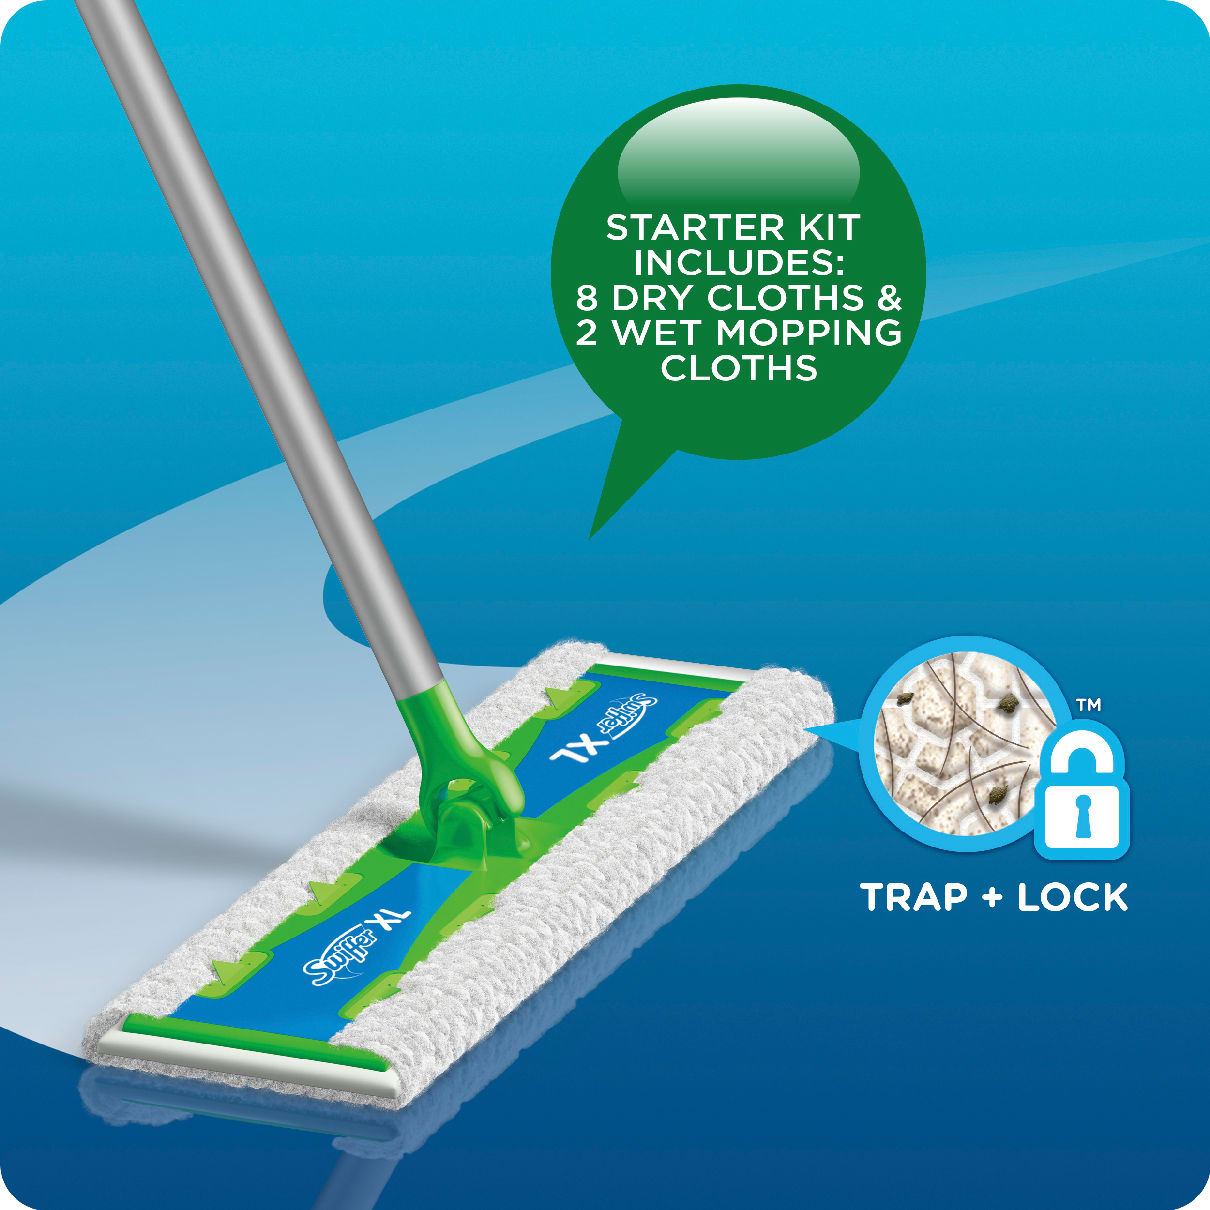 Swiffer Sweeper XL Starter Kit Includes 8 Dry Cloths & 2 Wet Mopping Cloths